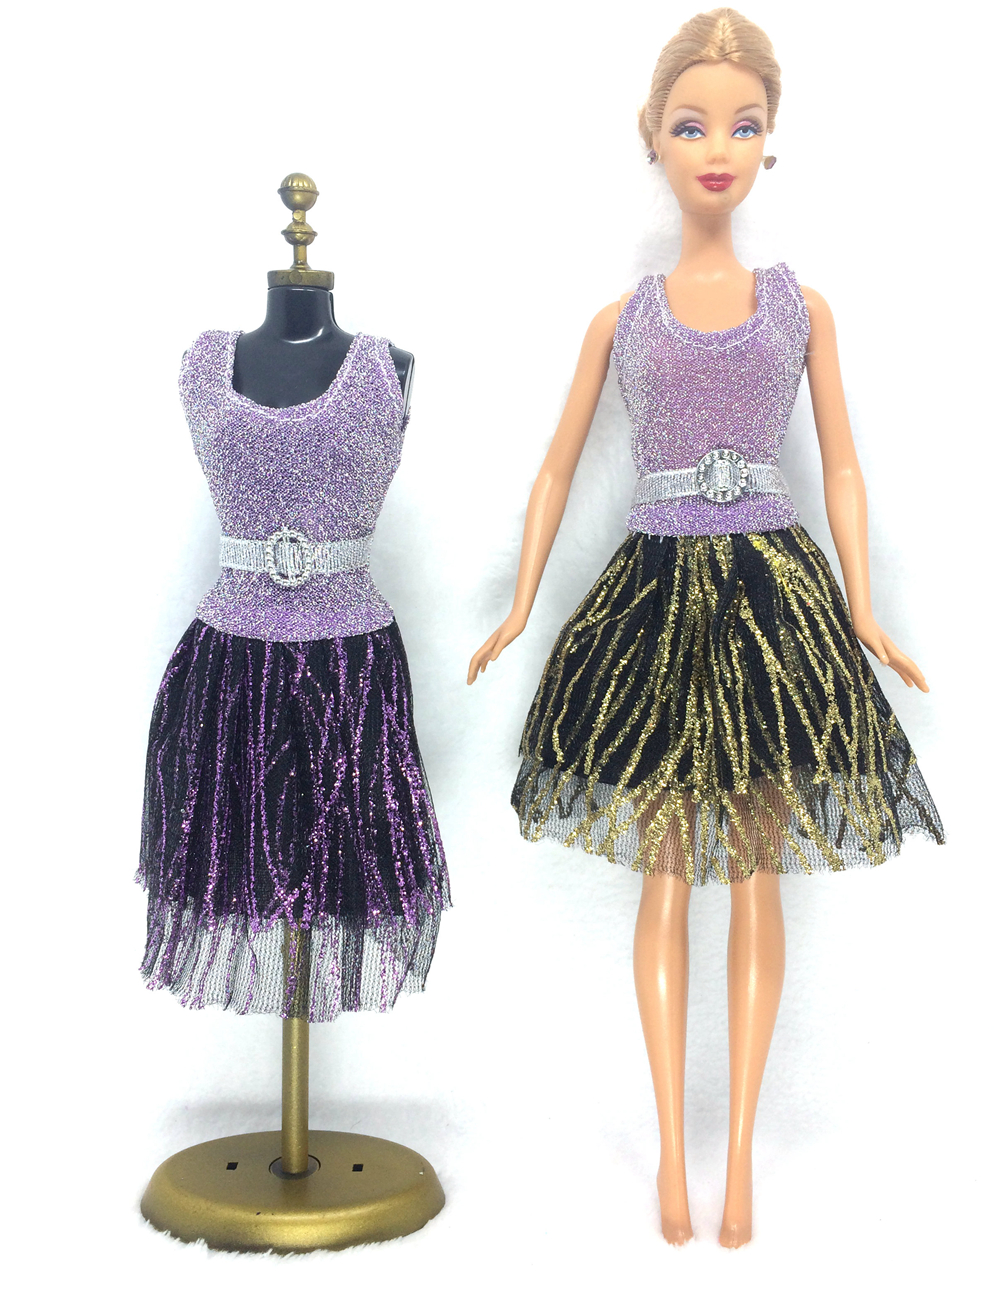 NK One Set Doll Clothes New Handmade Party Doll's Dress Clothes Gown For Barbie best baby gift free shipping 025A топы sally hansen dries instantly объем 13 3 мл